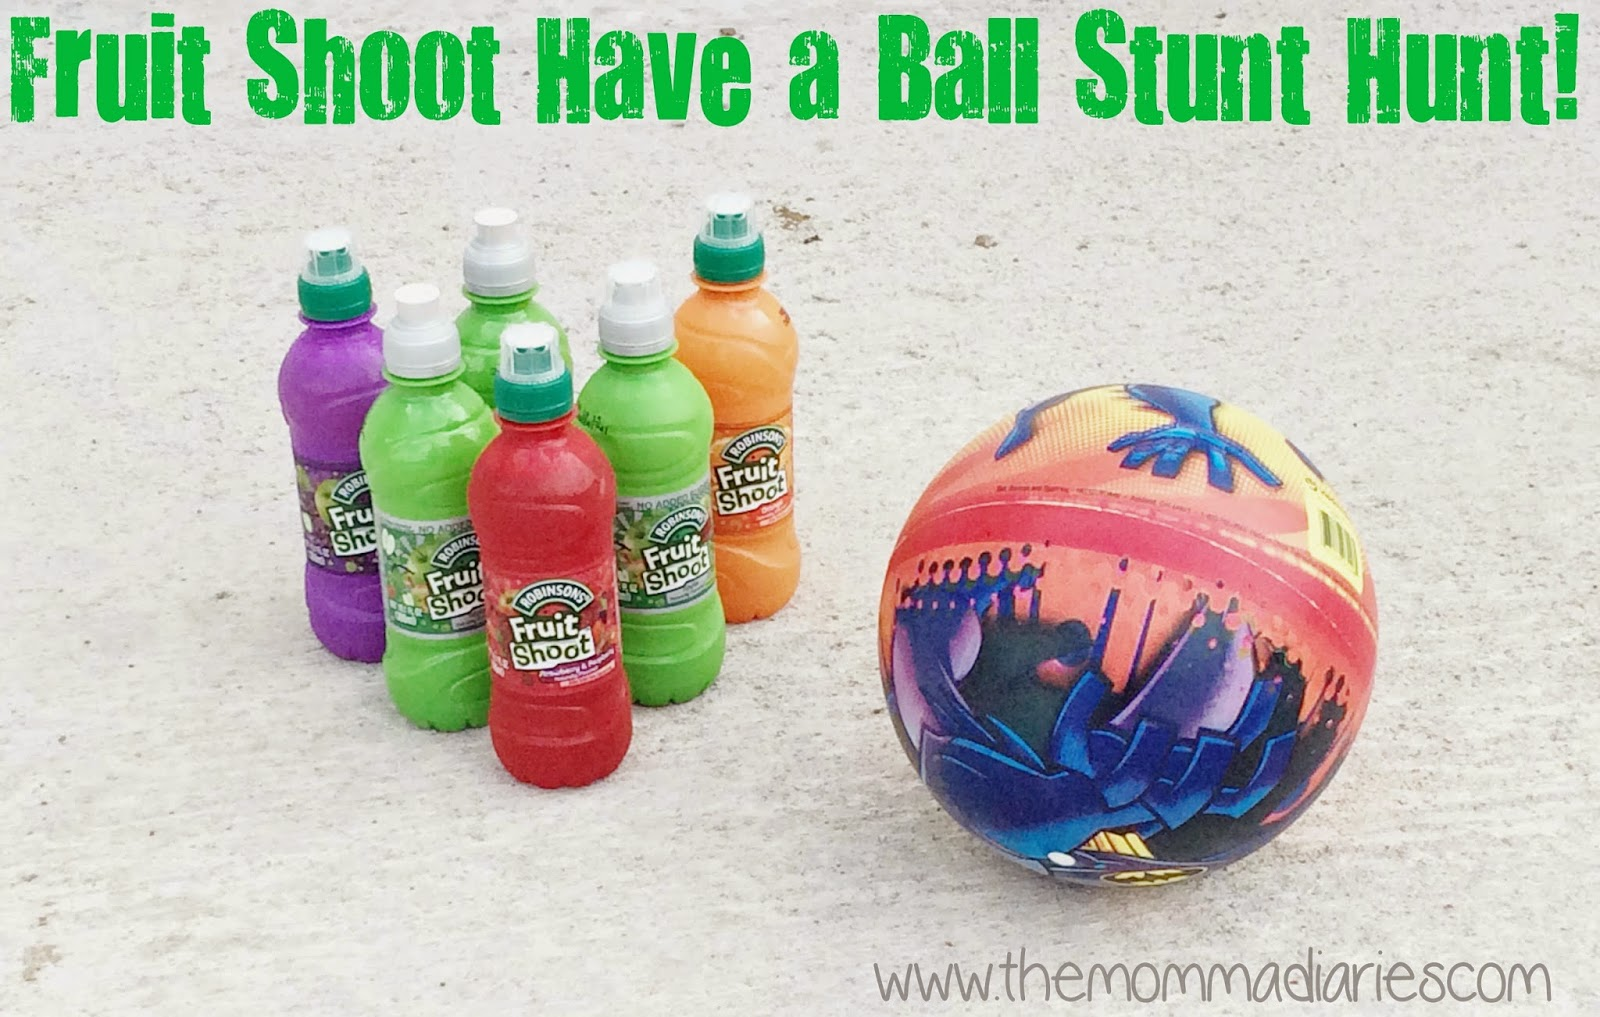 #fruitshoot #stunthunt